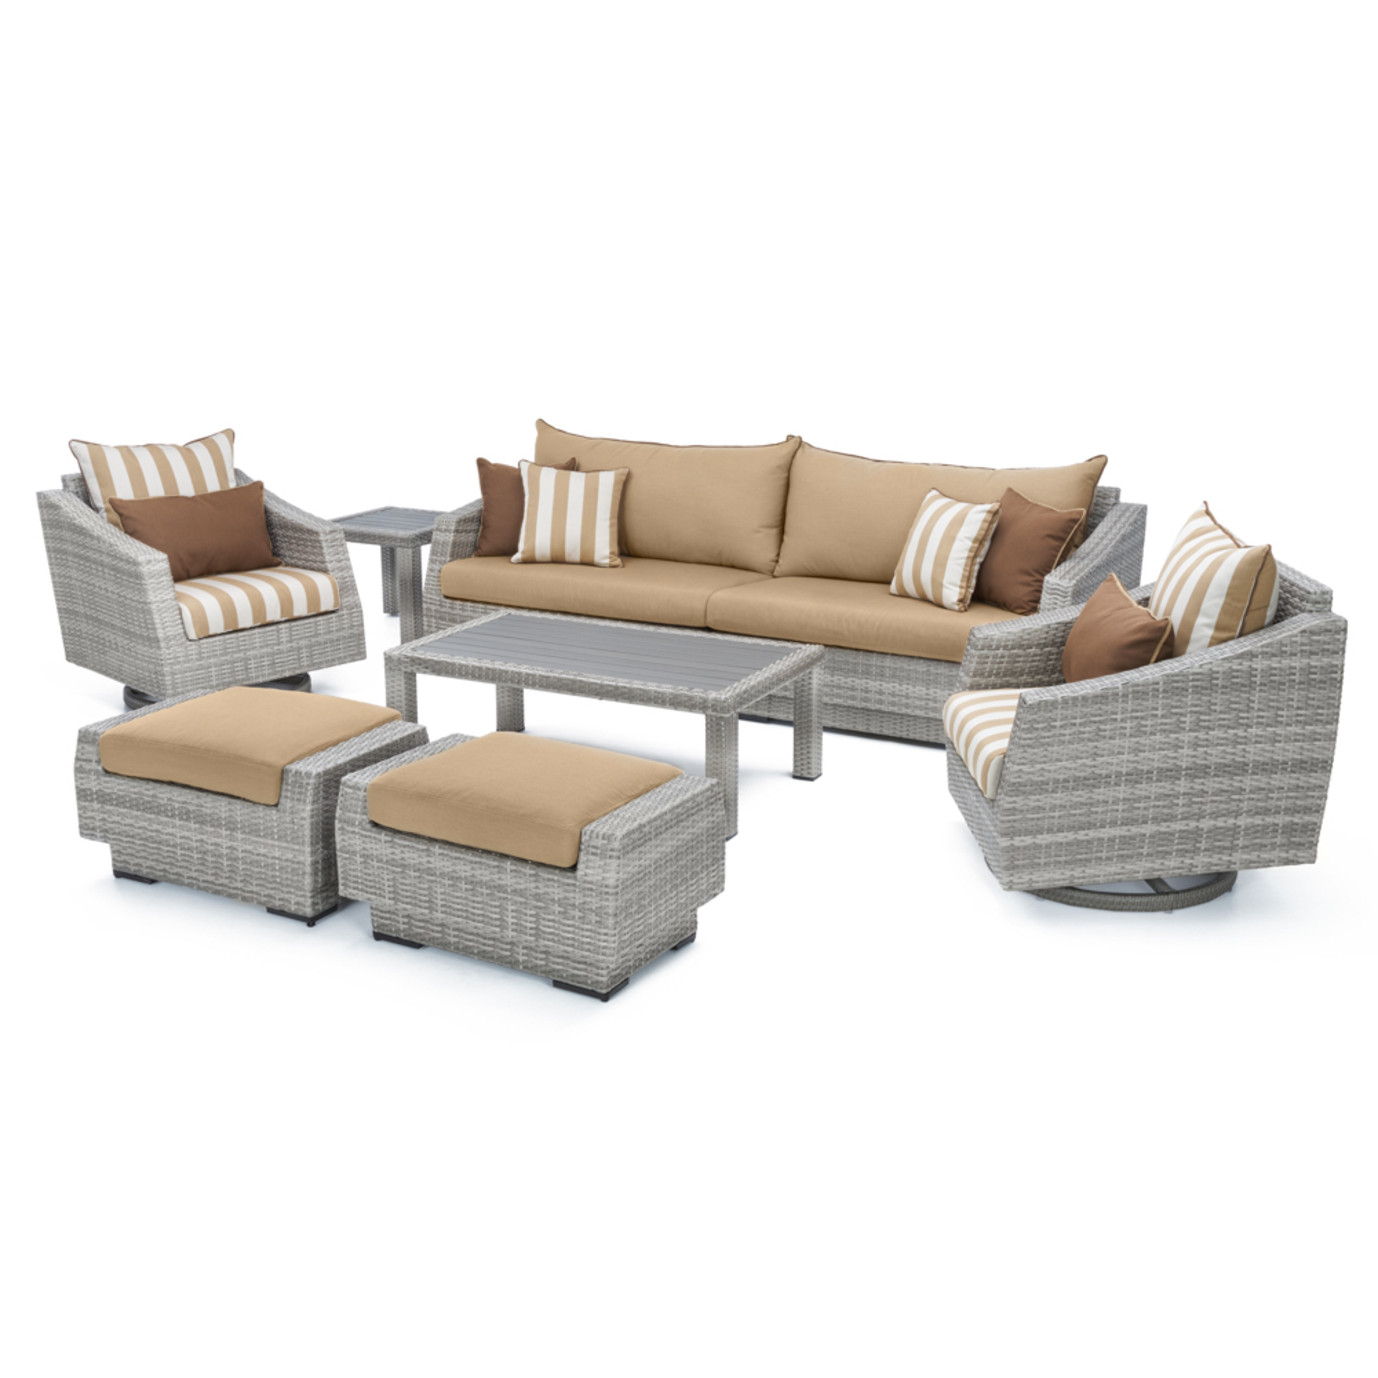 Cannes™ 8pc Sofa & Club Chair Set - Maxim Beige Design